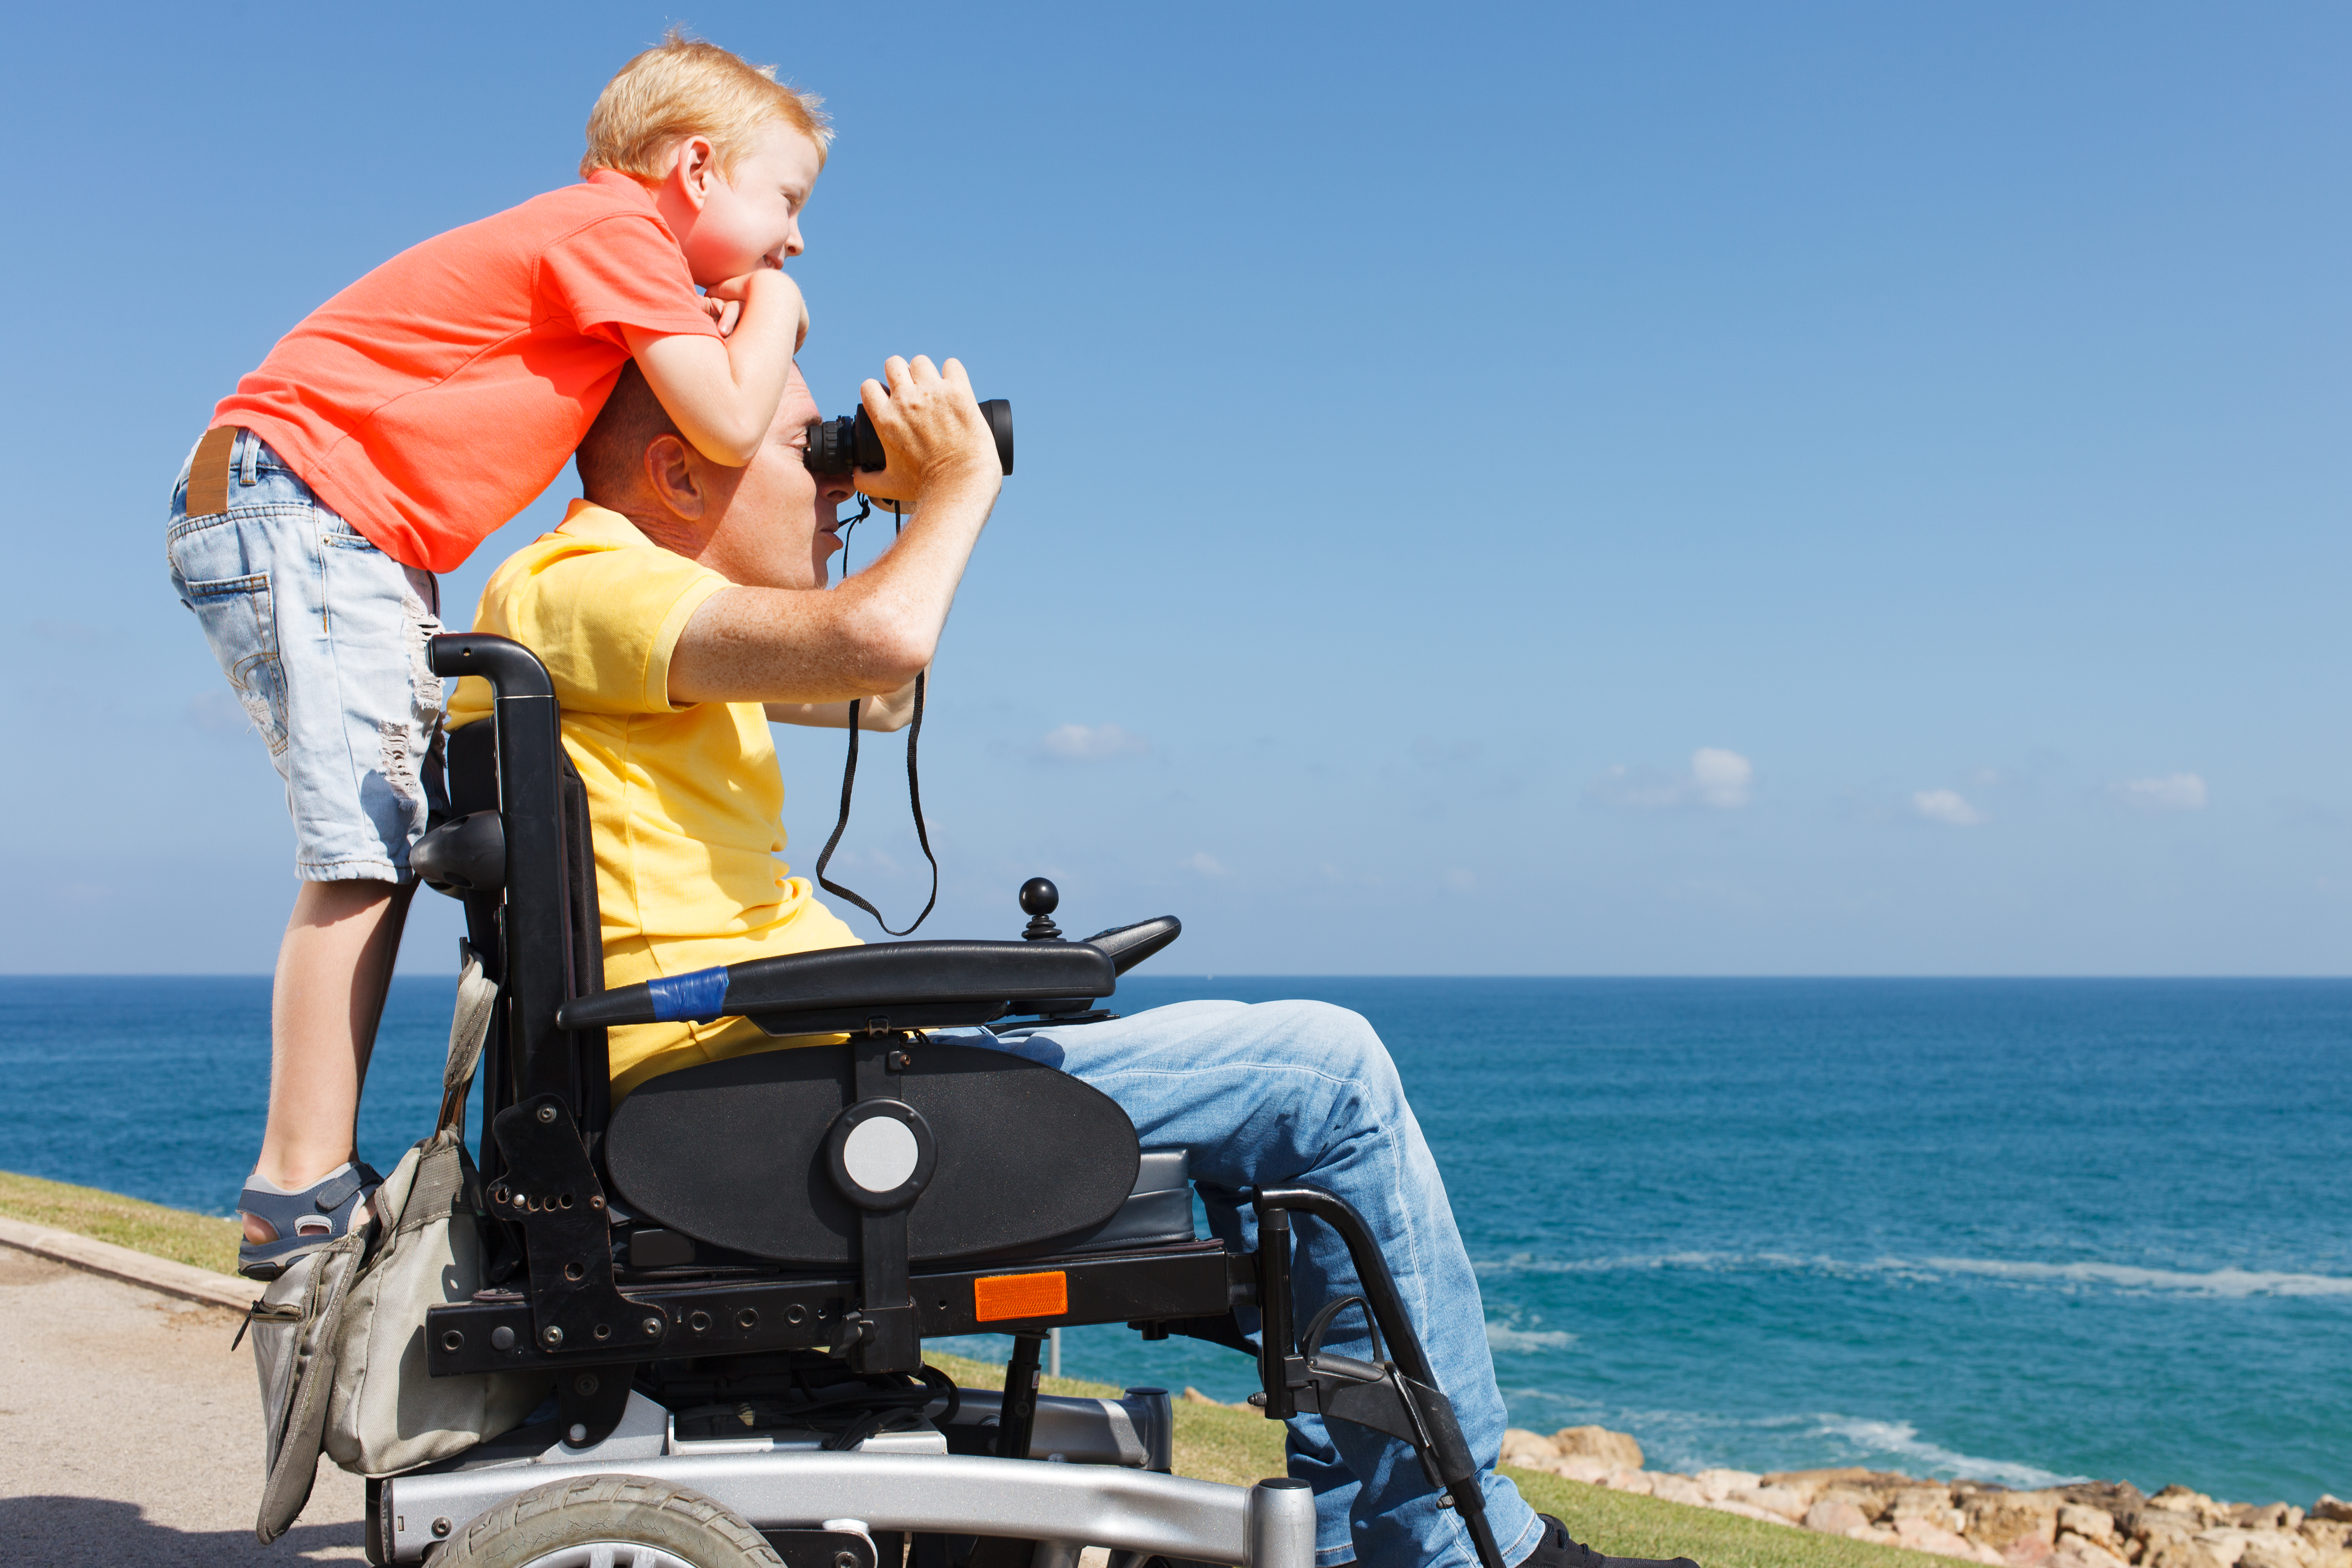 Disabled father, sat in powered wheelchair looking out to sea with a pair of binoculars with a young boy with blonde hair standing on the back of his wheelchair smiling